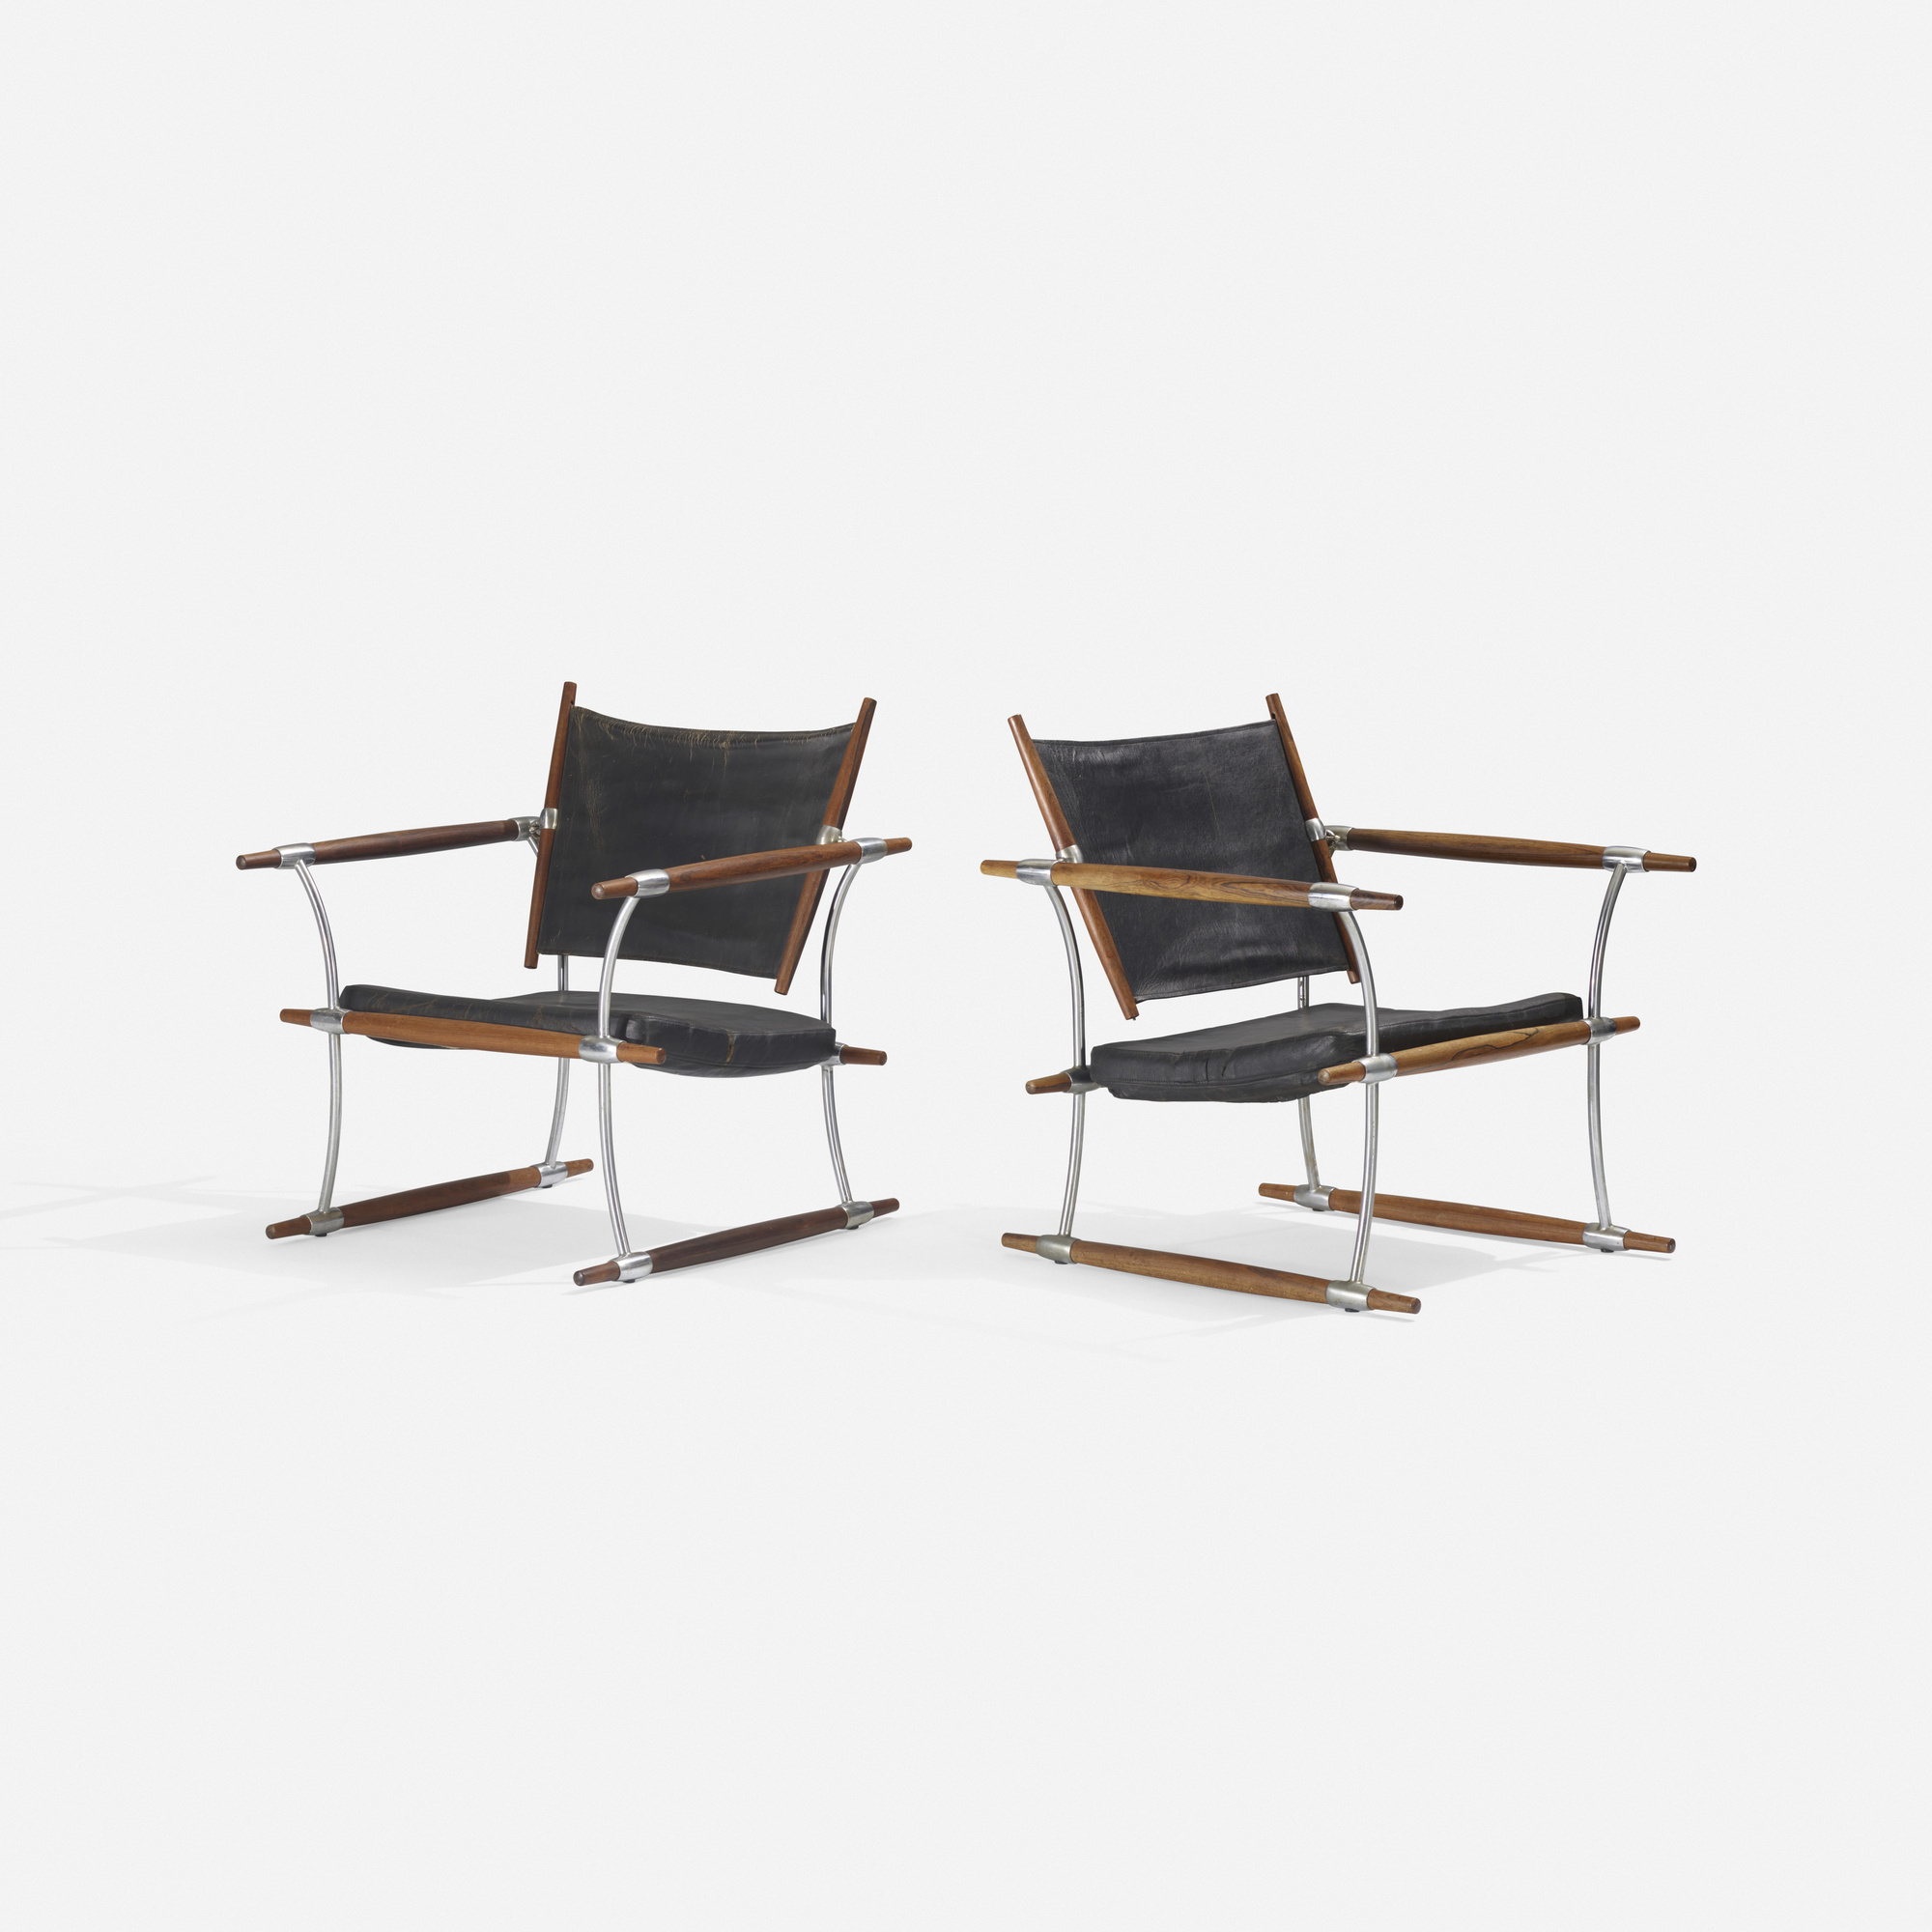 216: Jens Quistgaard / Stocke lounge chairs, pair (2 of 3)